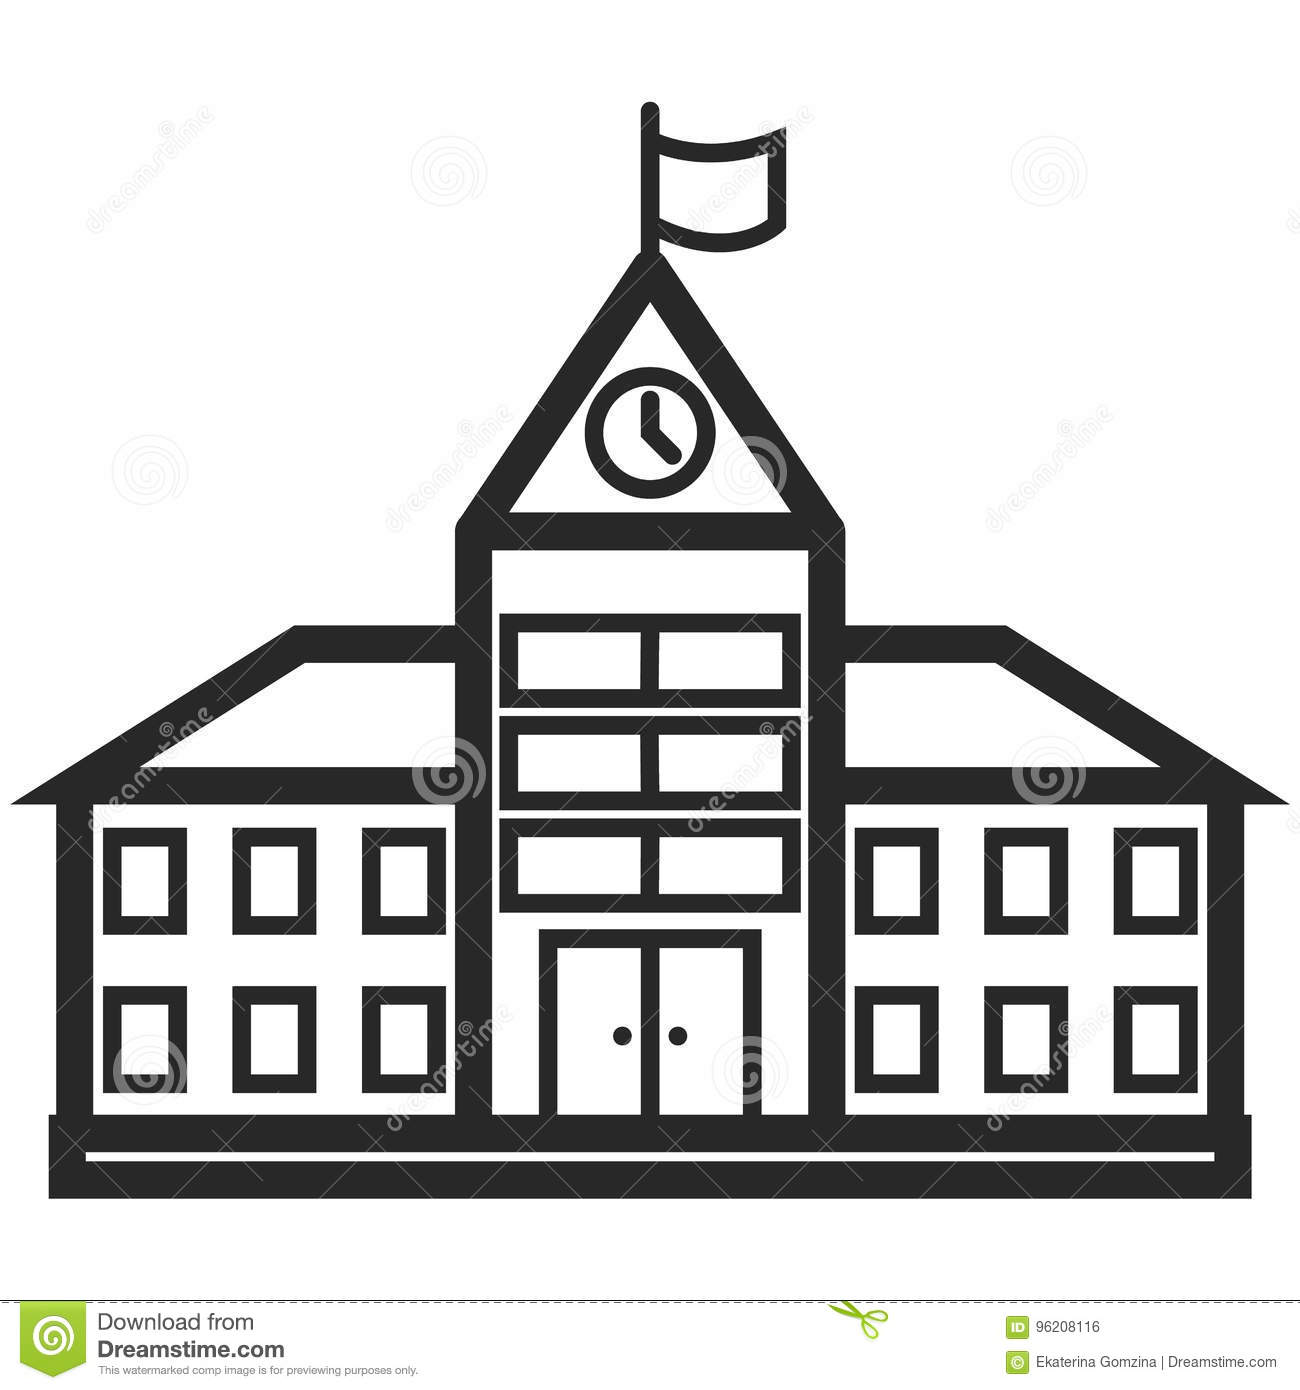 Line Art Building : Simple vector icon of a school building in line art style